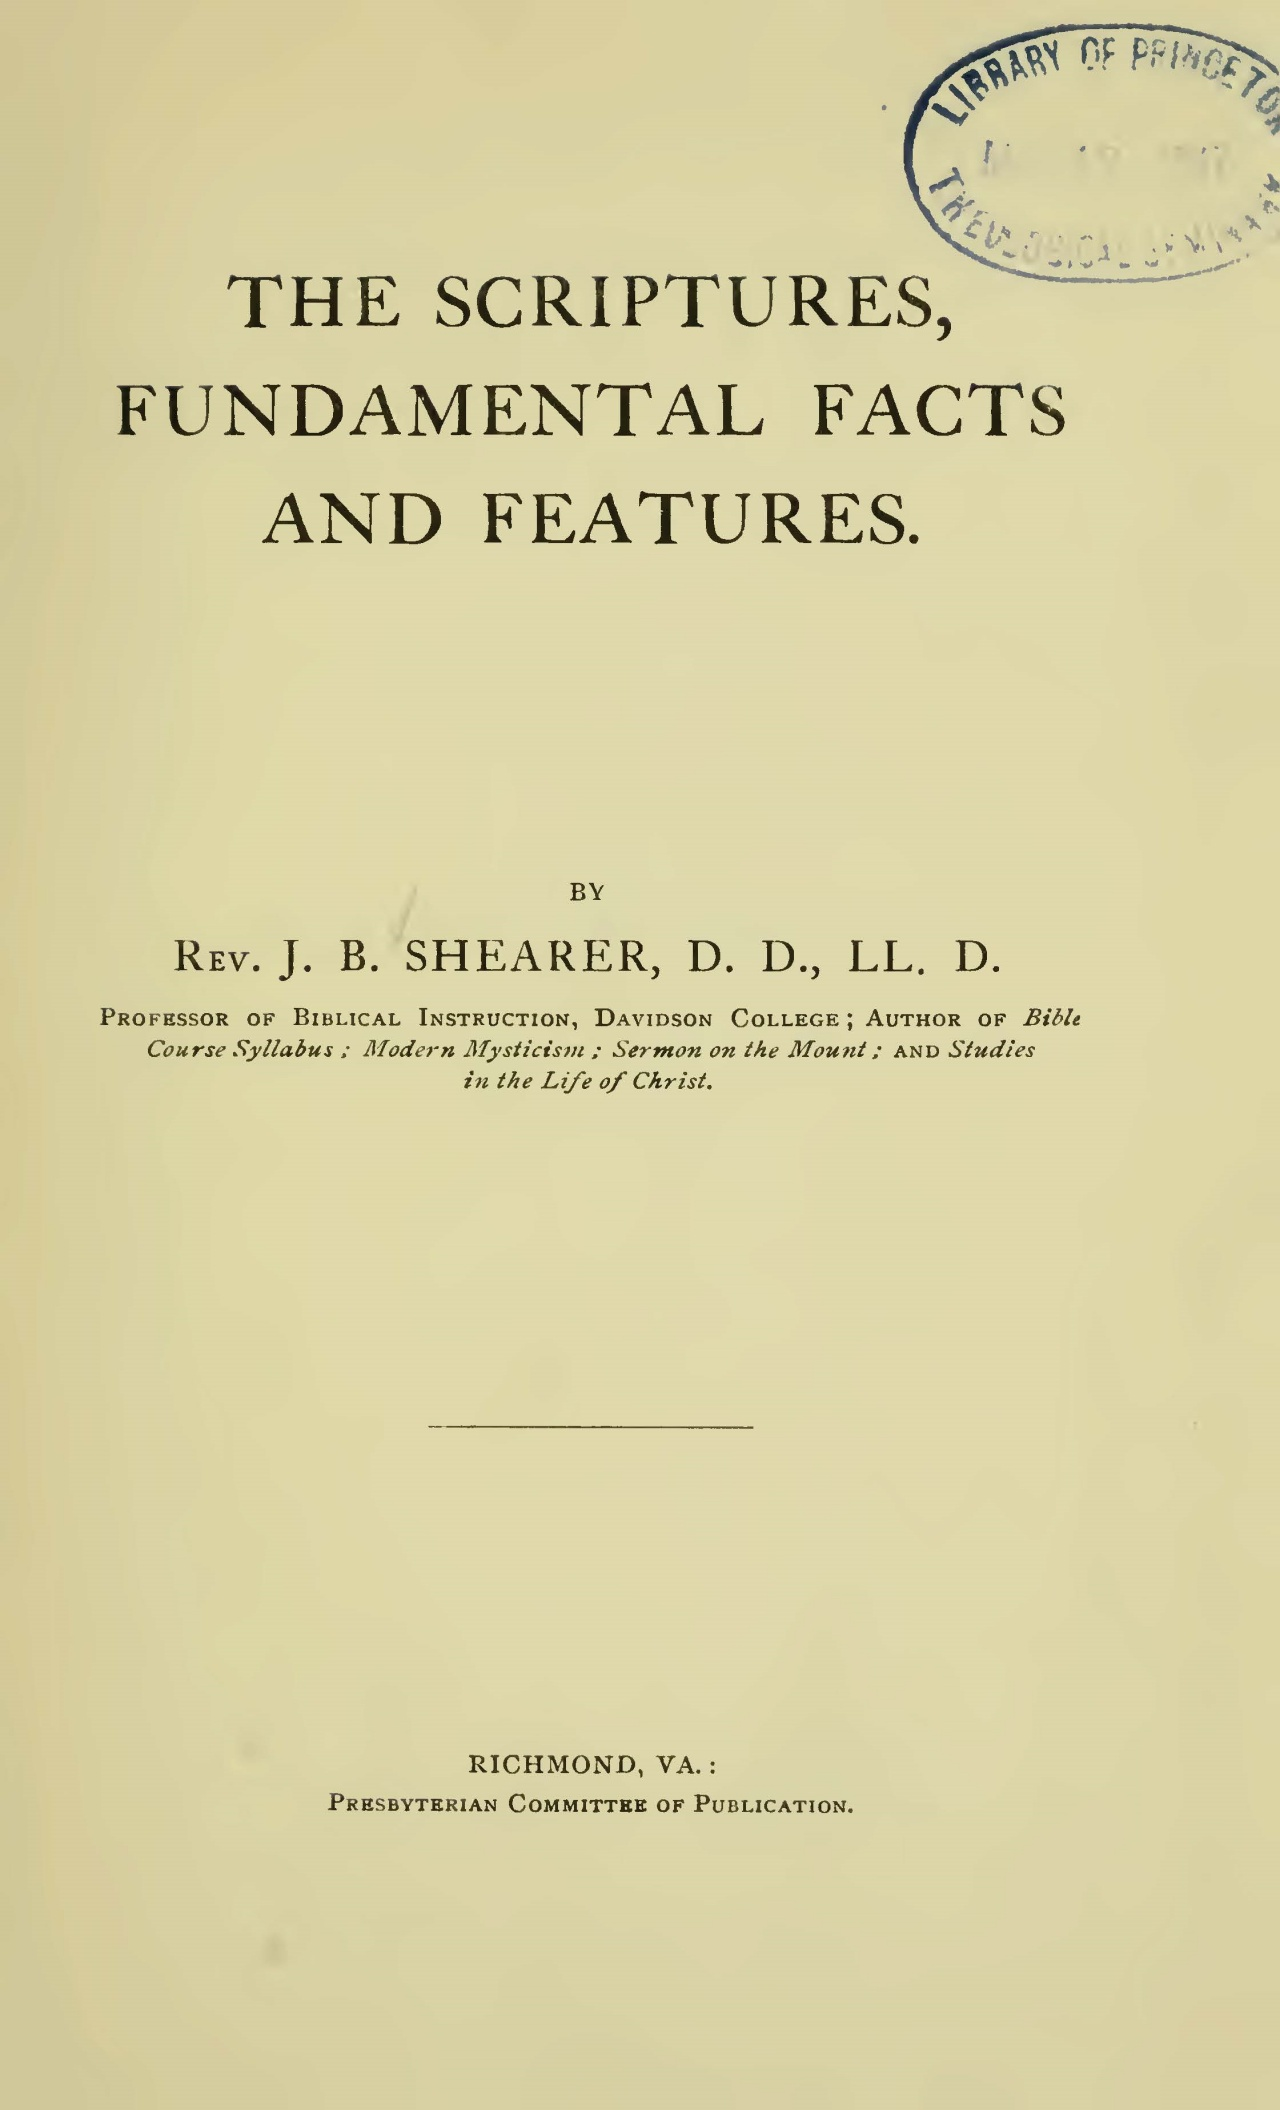 Shearer, John Bunyan, The Scriptures Fundamental Facts and Features Title Page.jpg